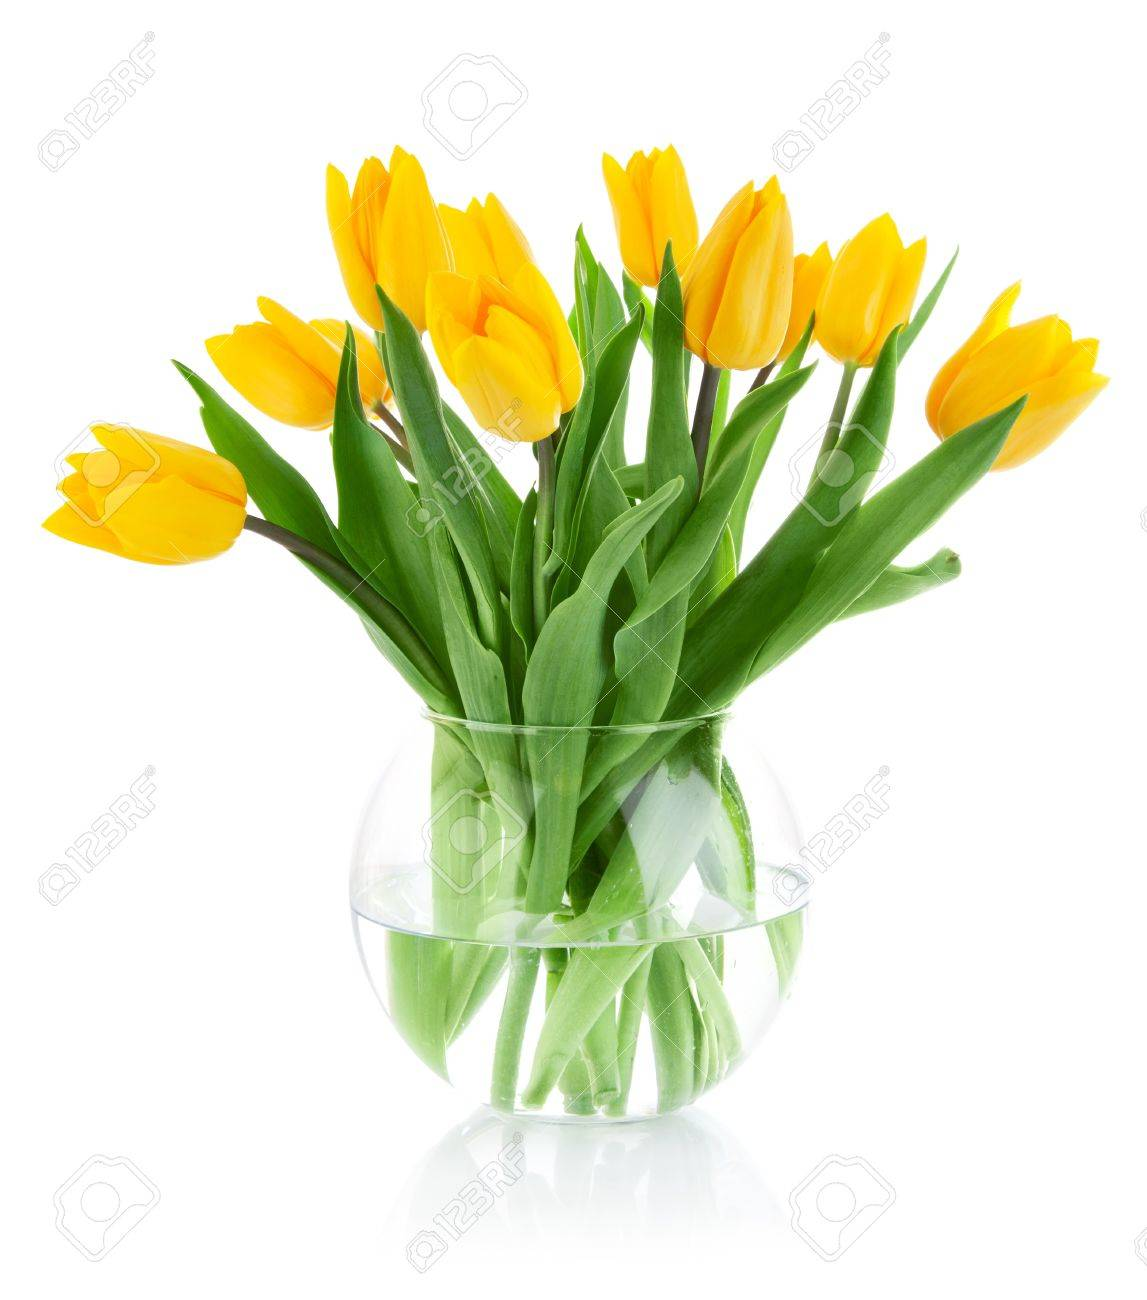 yellow tulip flowers in glass vase isolated on white background Stock Photo - 9251301